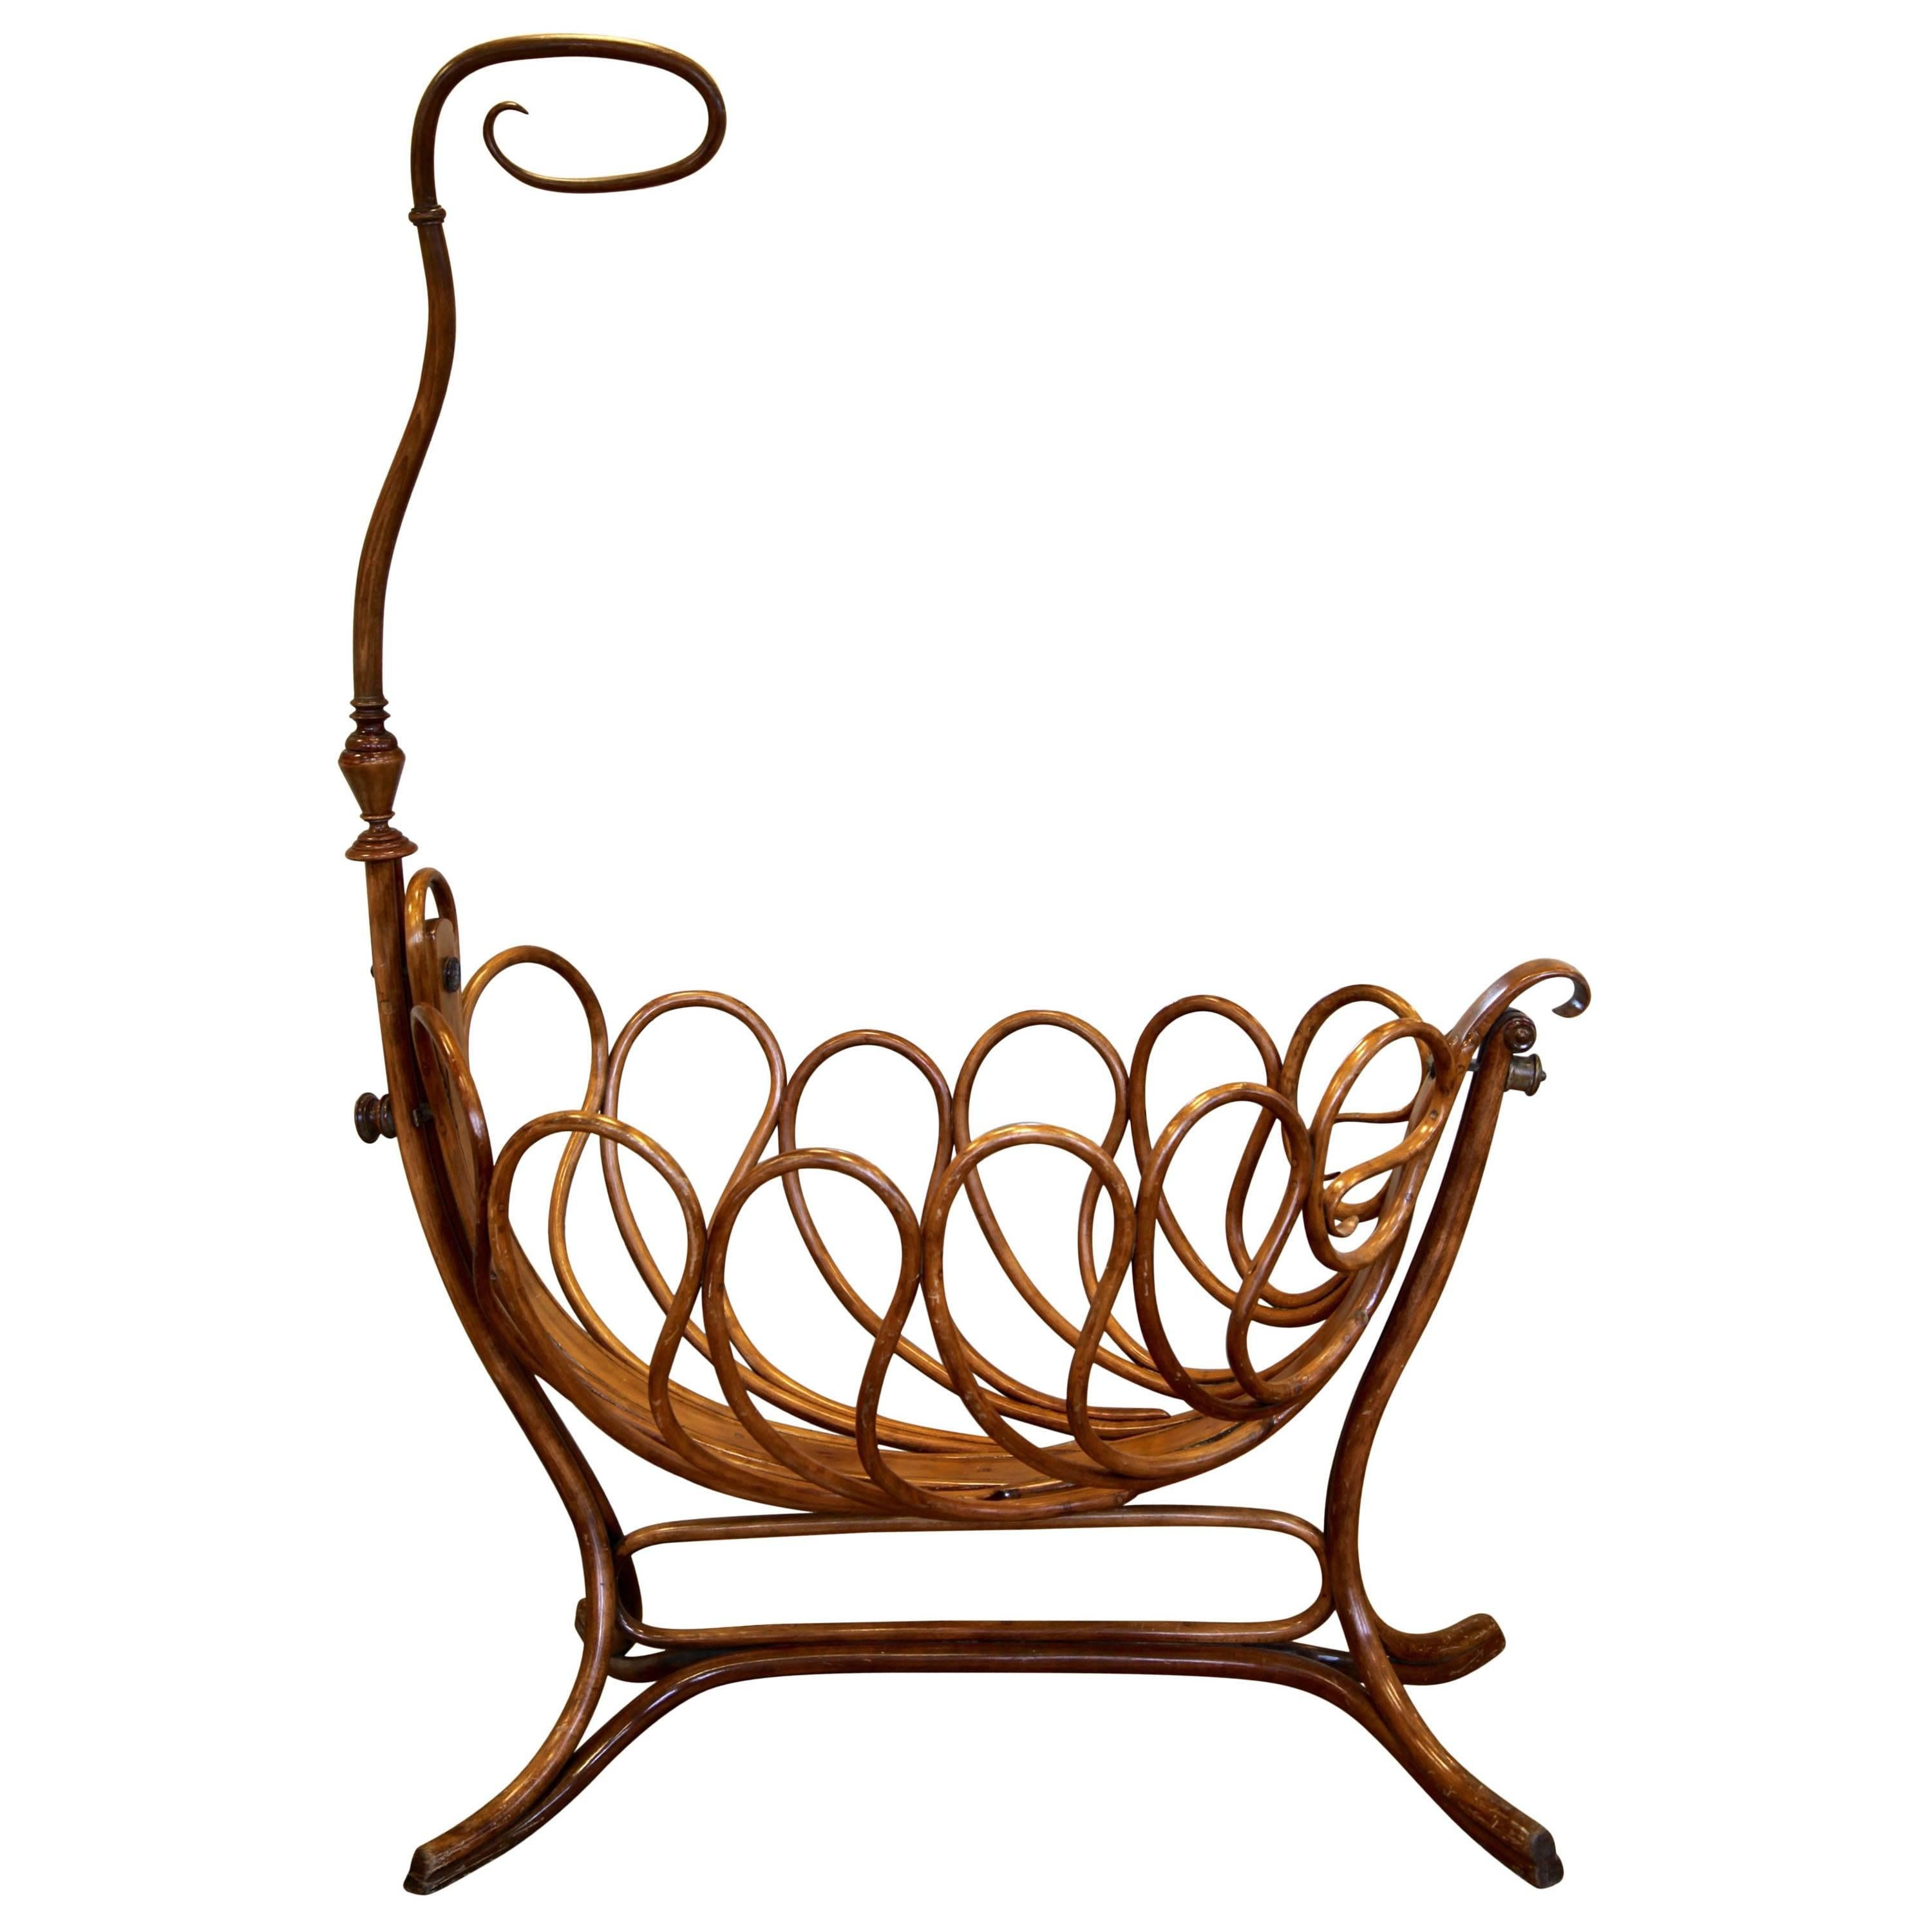 Rare French Bentwood Cradle in the Thonet Style Late 19th Century